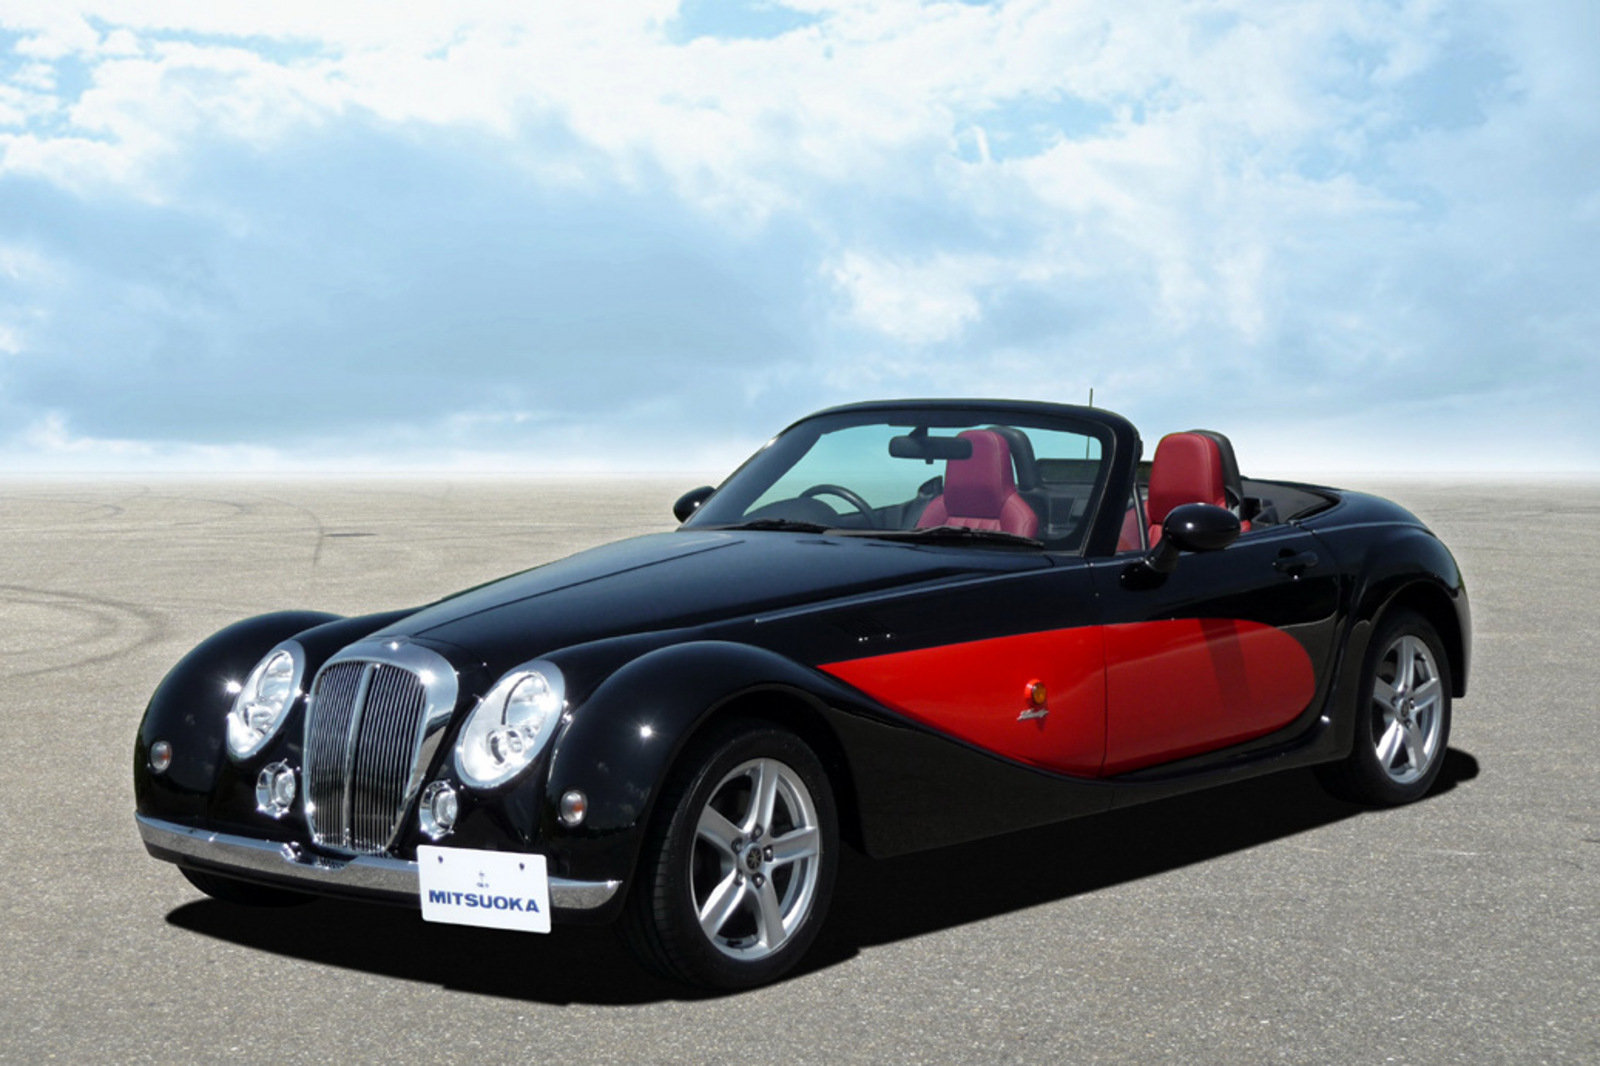 2010 mitsuoka himiko roadster special edition review top speed. Black Bedroom Furniture Sets. Home Design Ideas